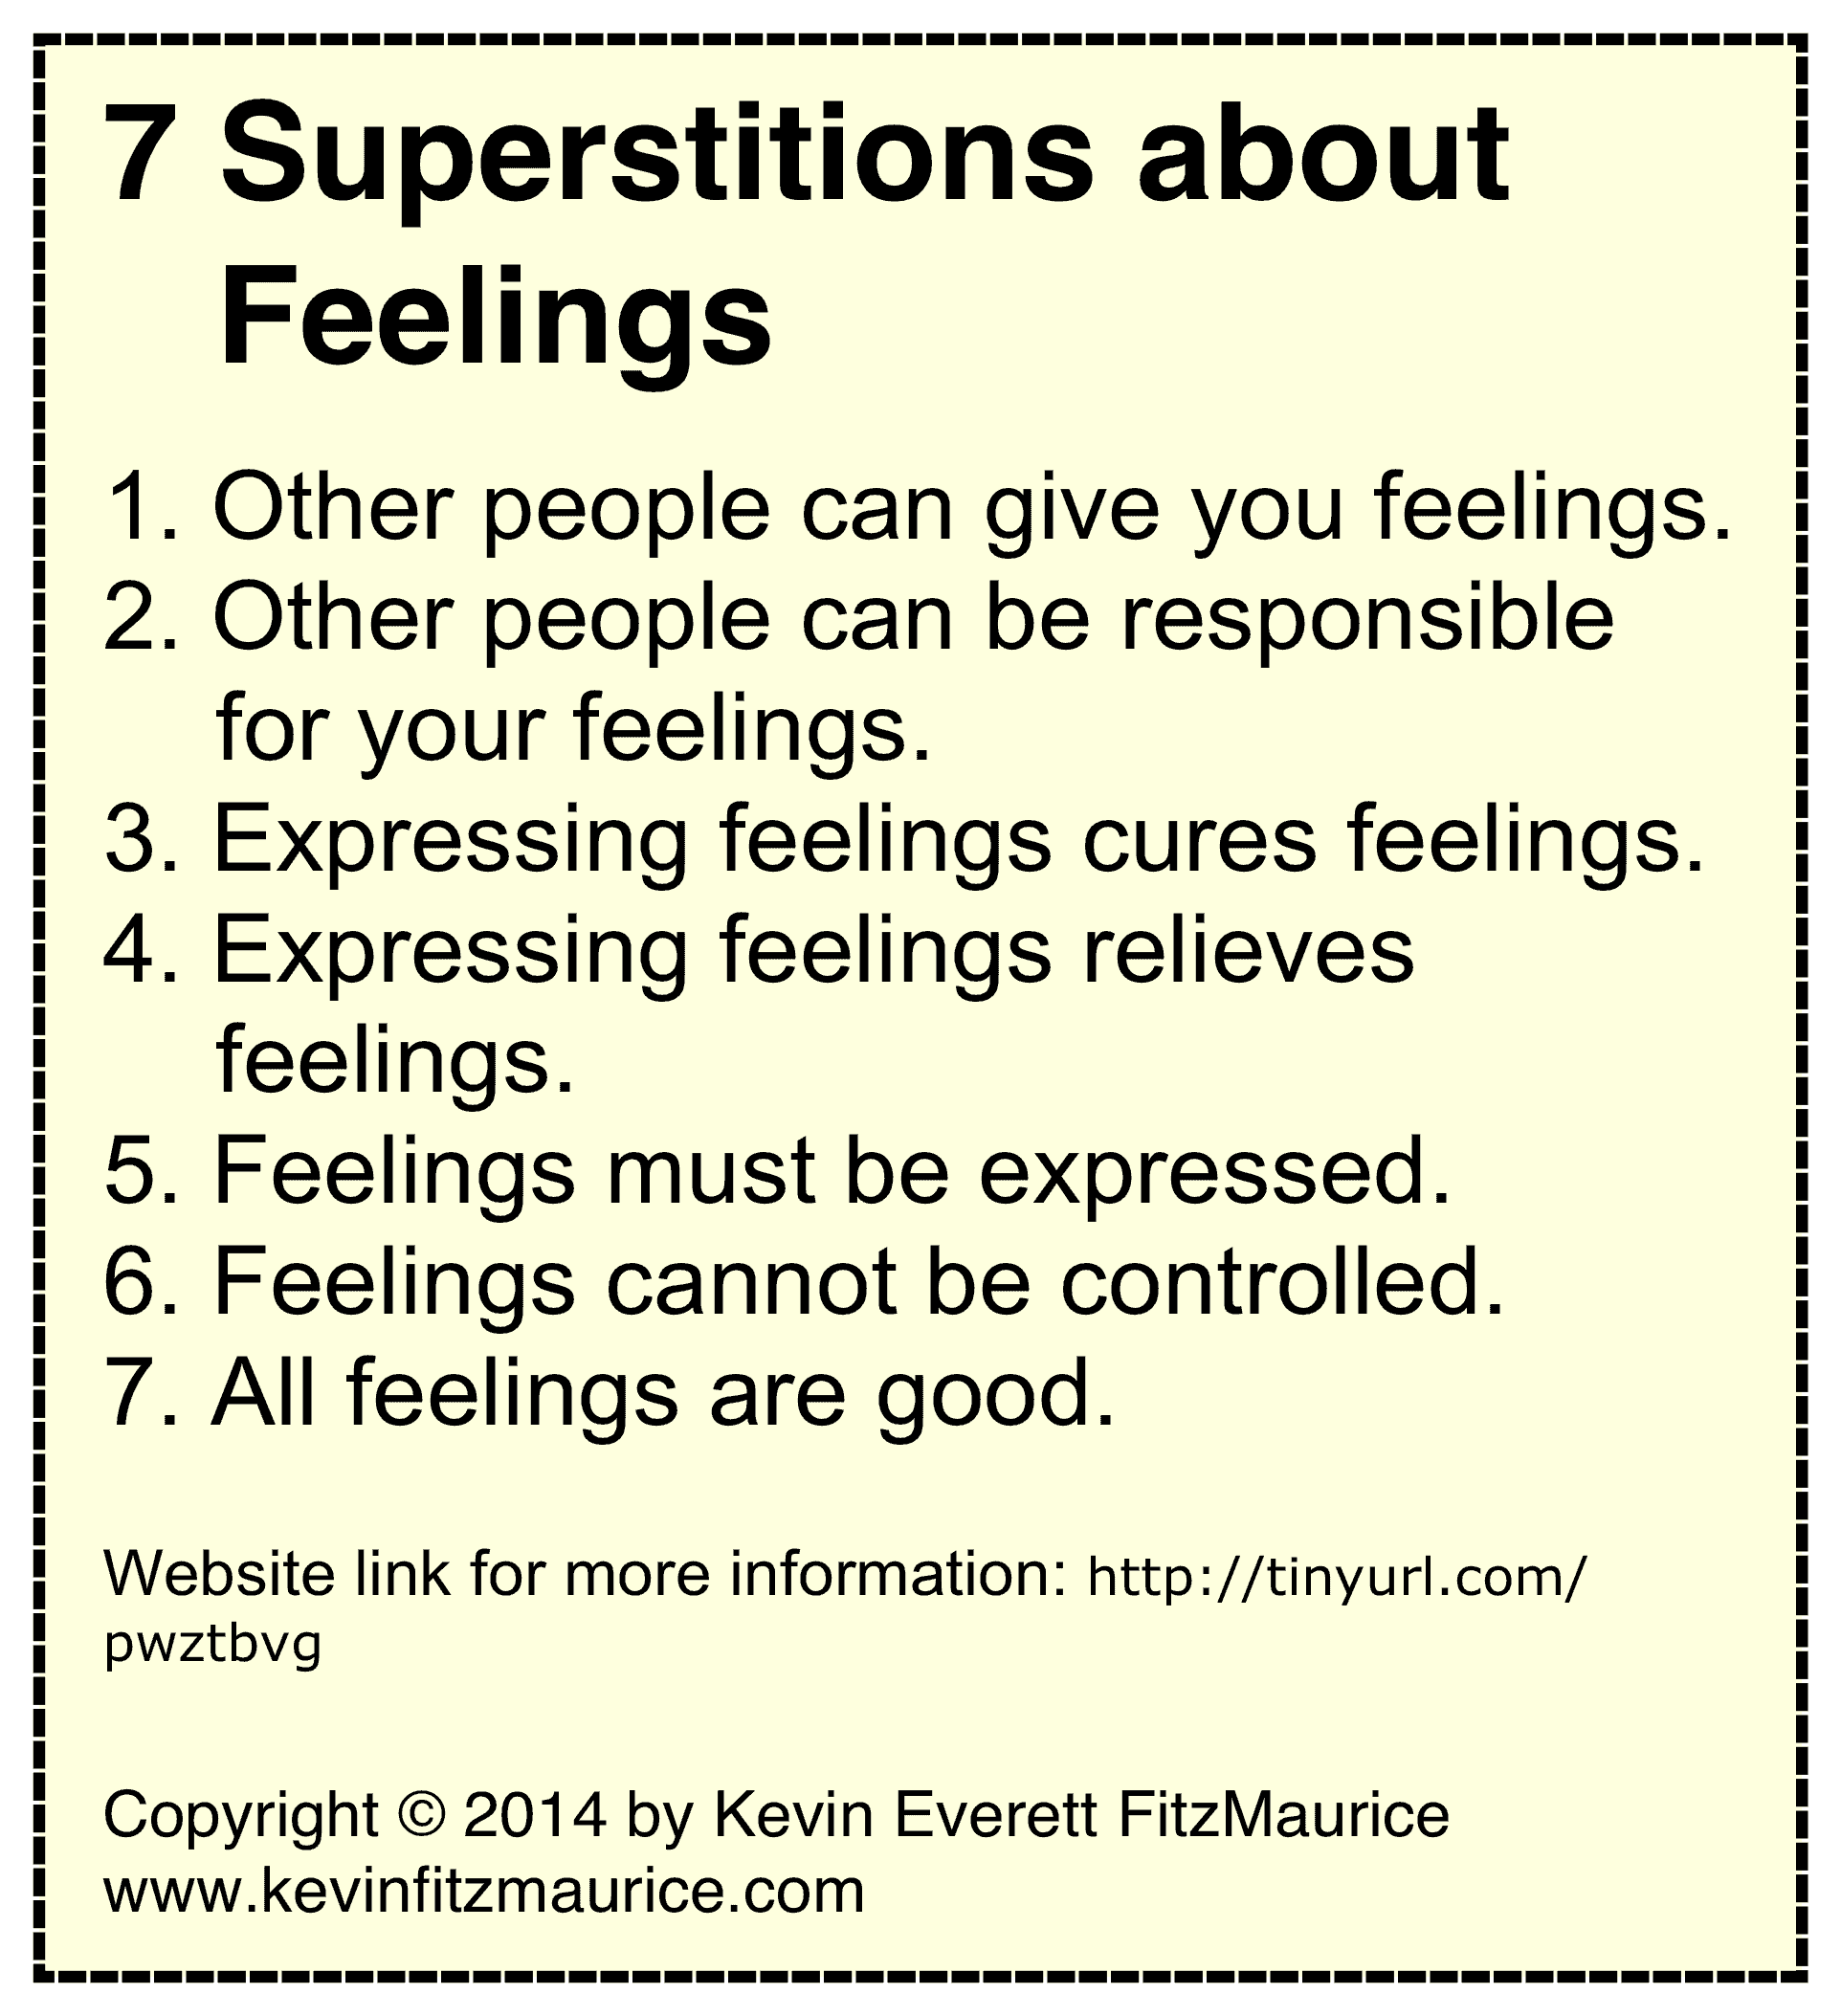 7 feeling superstitions